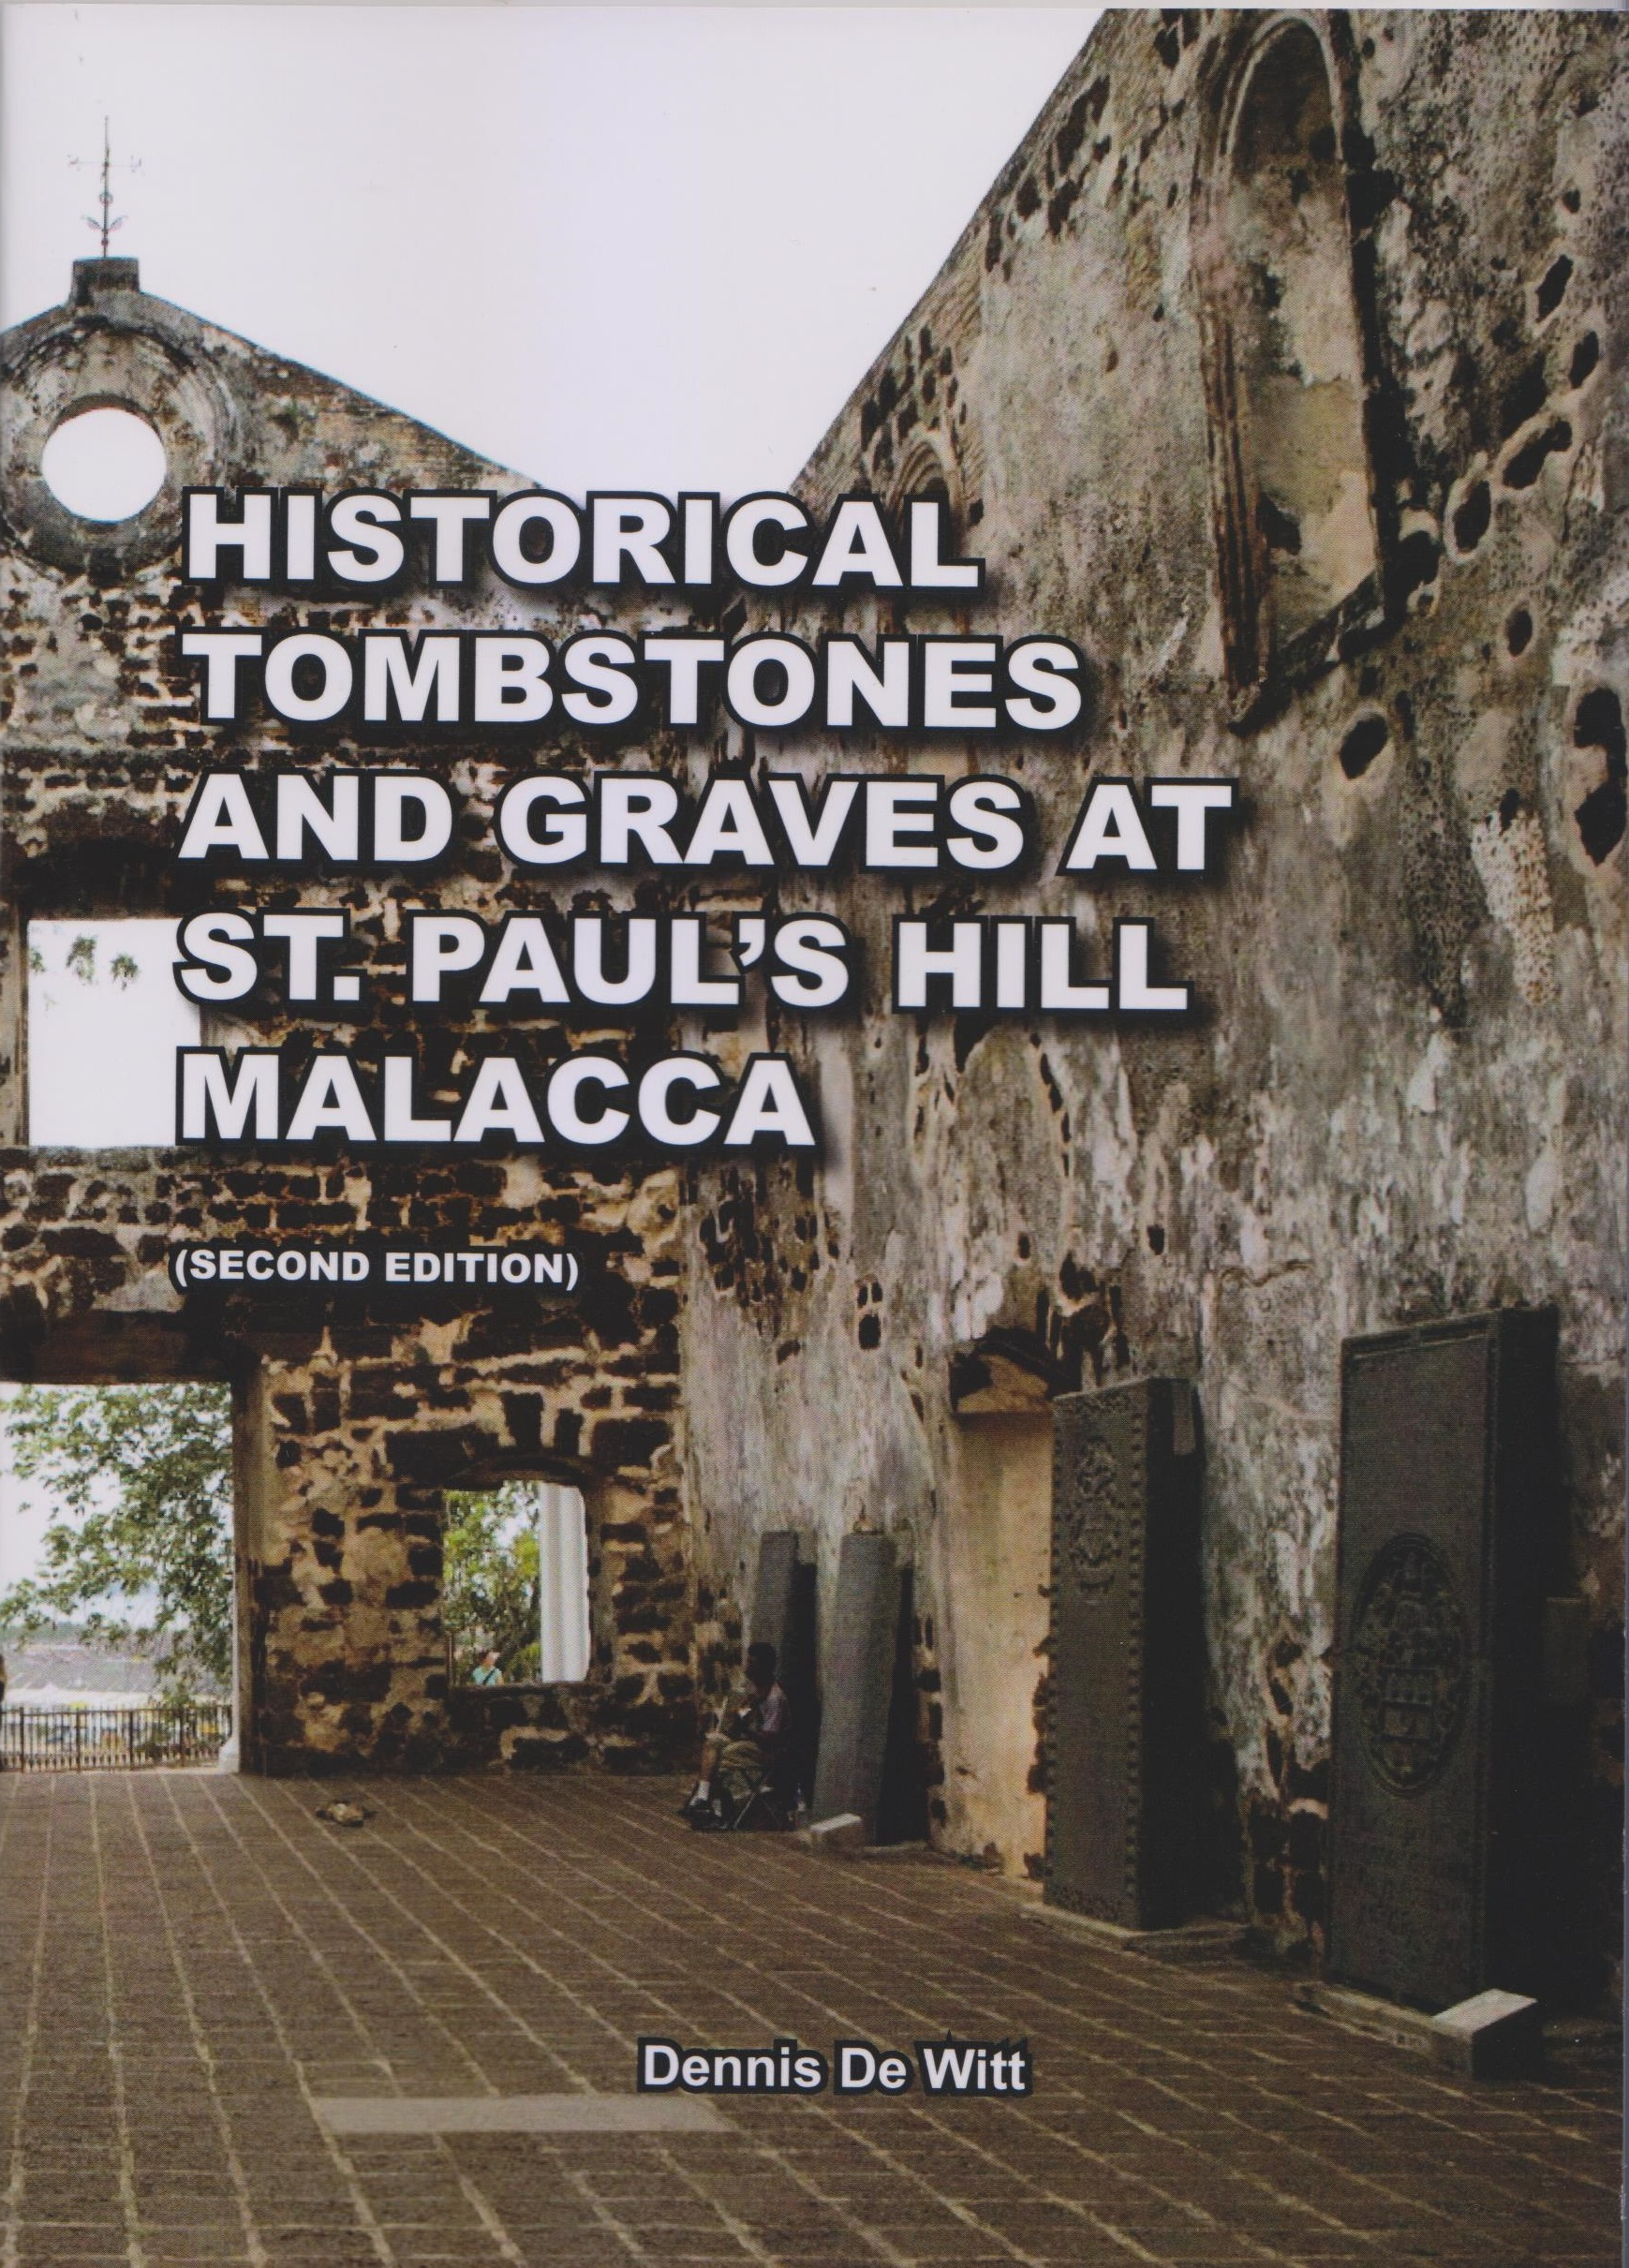 Historical Tombstones and Graves at St. Paul's Hill Malacca (Second Edition)